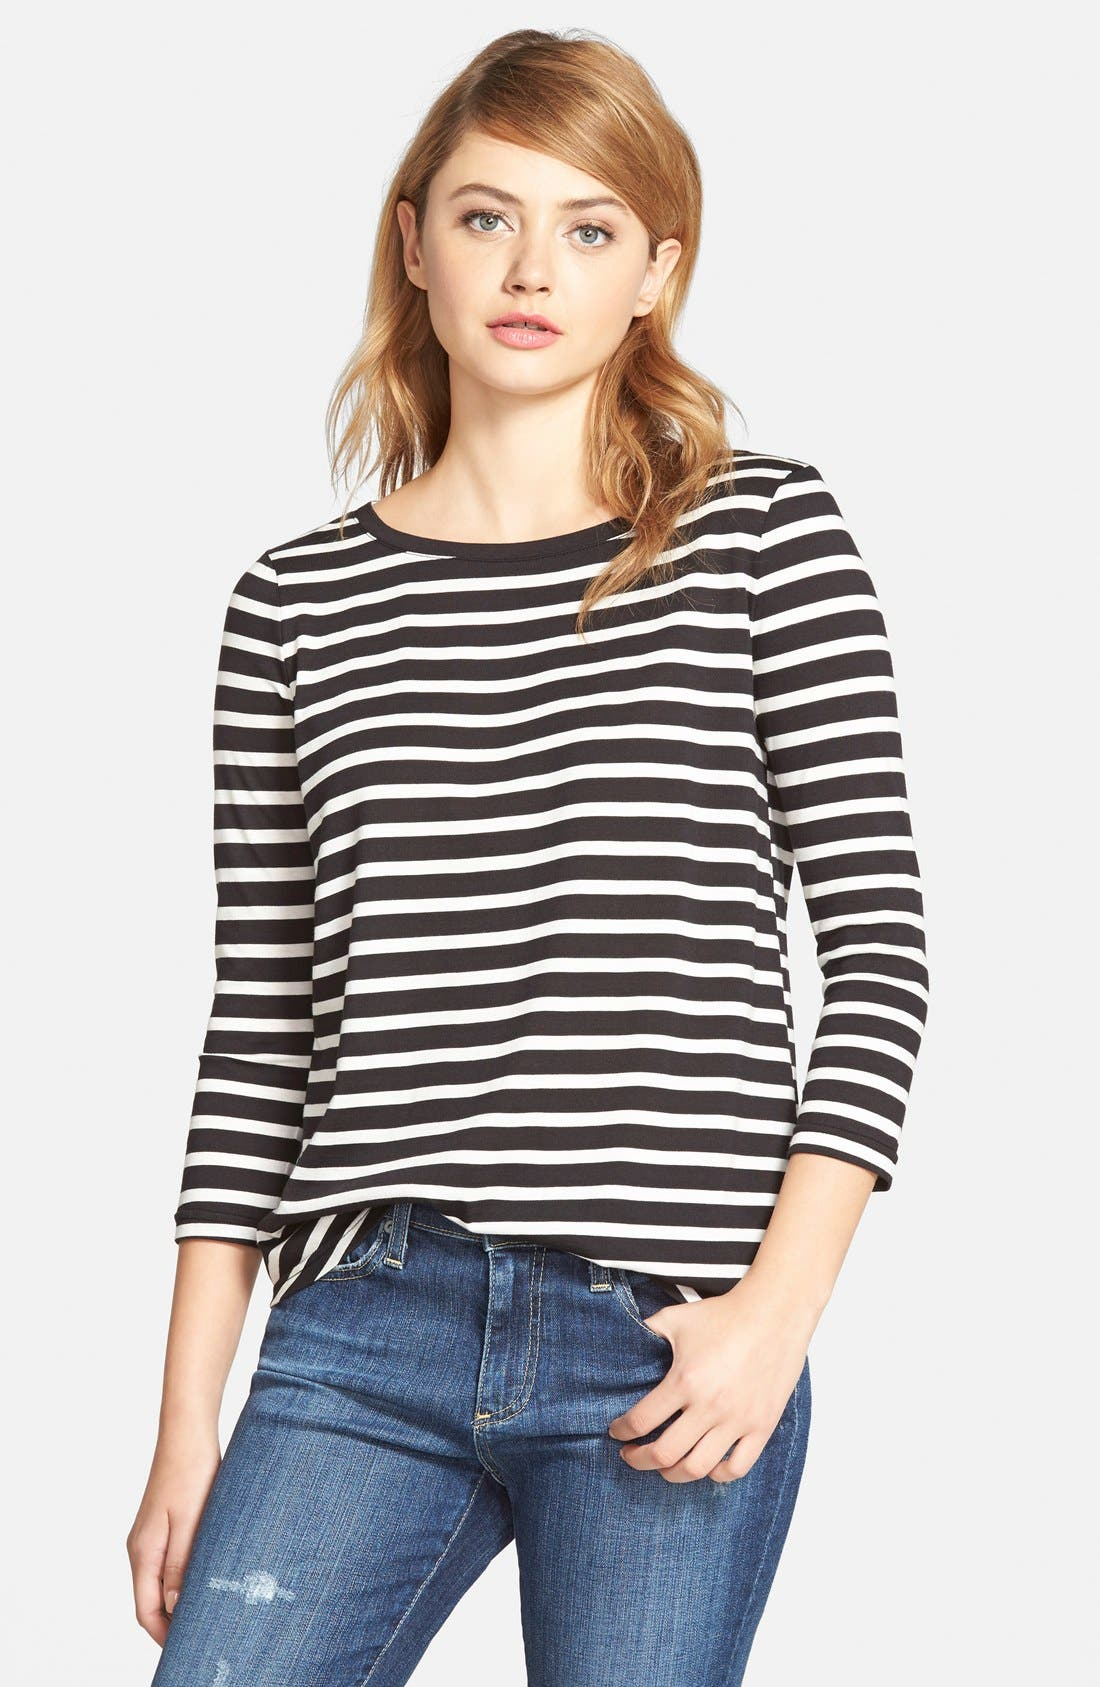 CUPCAKES AND CASHMERE, 'Mendocino' Stripe Top, Main thumbnail 1, color, 001